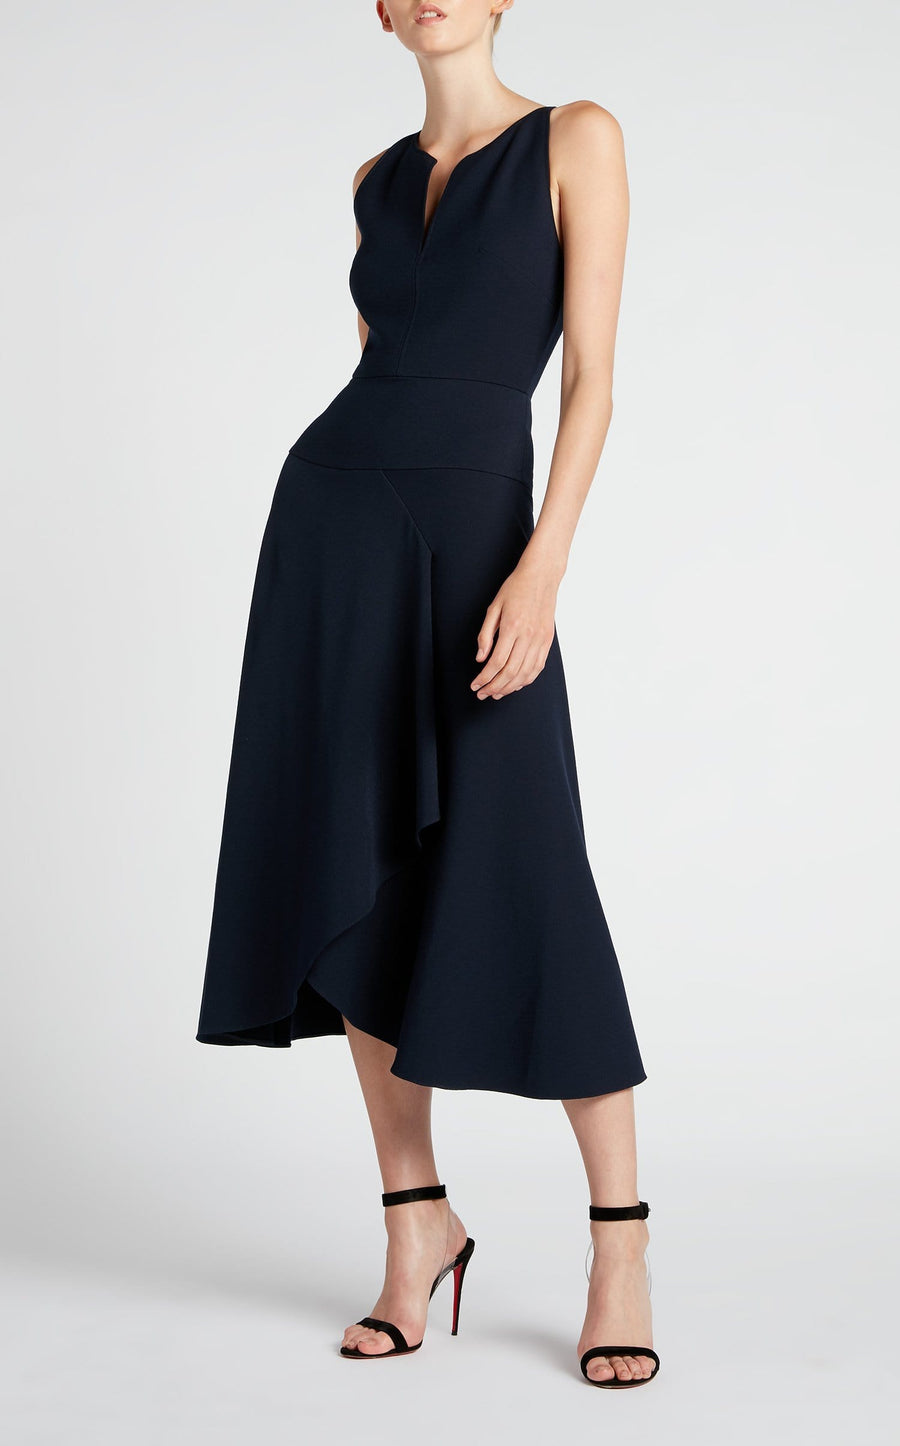 Jackson Dress In Navy from Roland Mouret